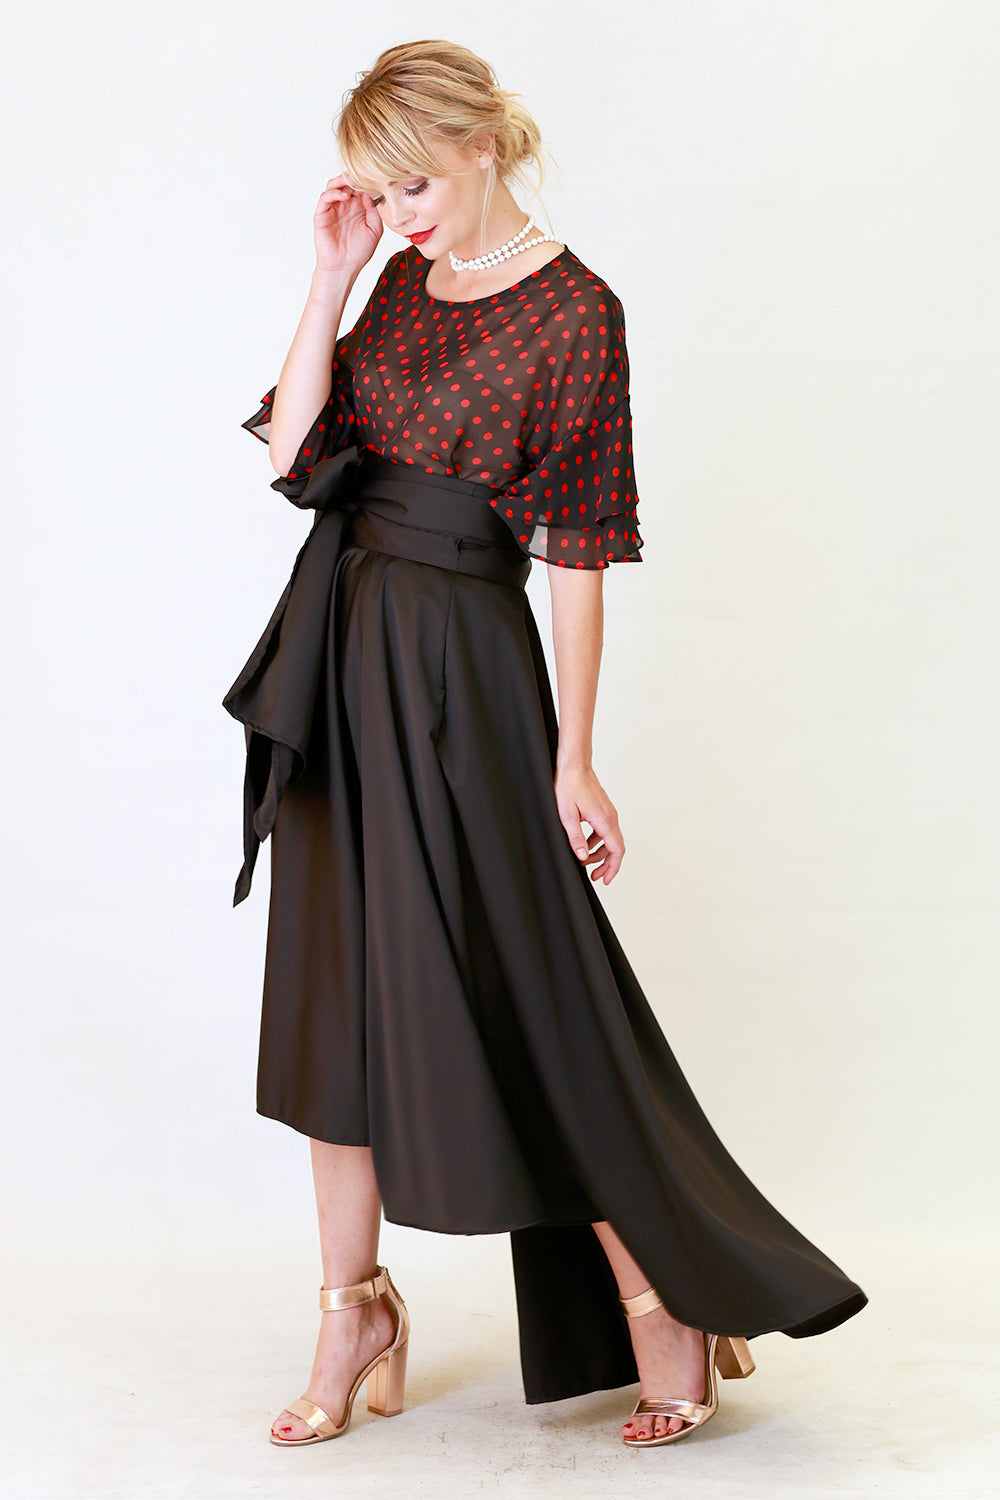 Miriam Kay Skirt | Wrap Around Dresses Skirts | New Zealand Fashion | Annah Stretton